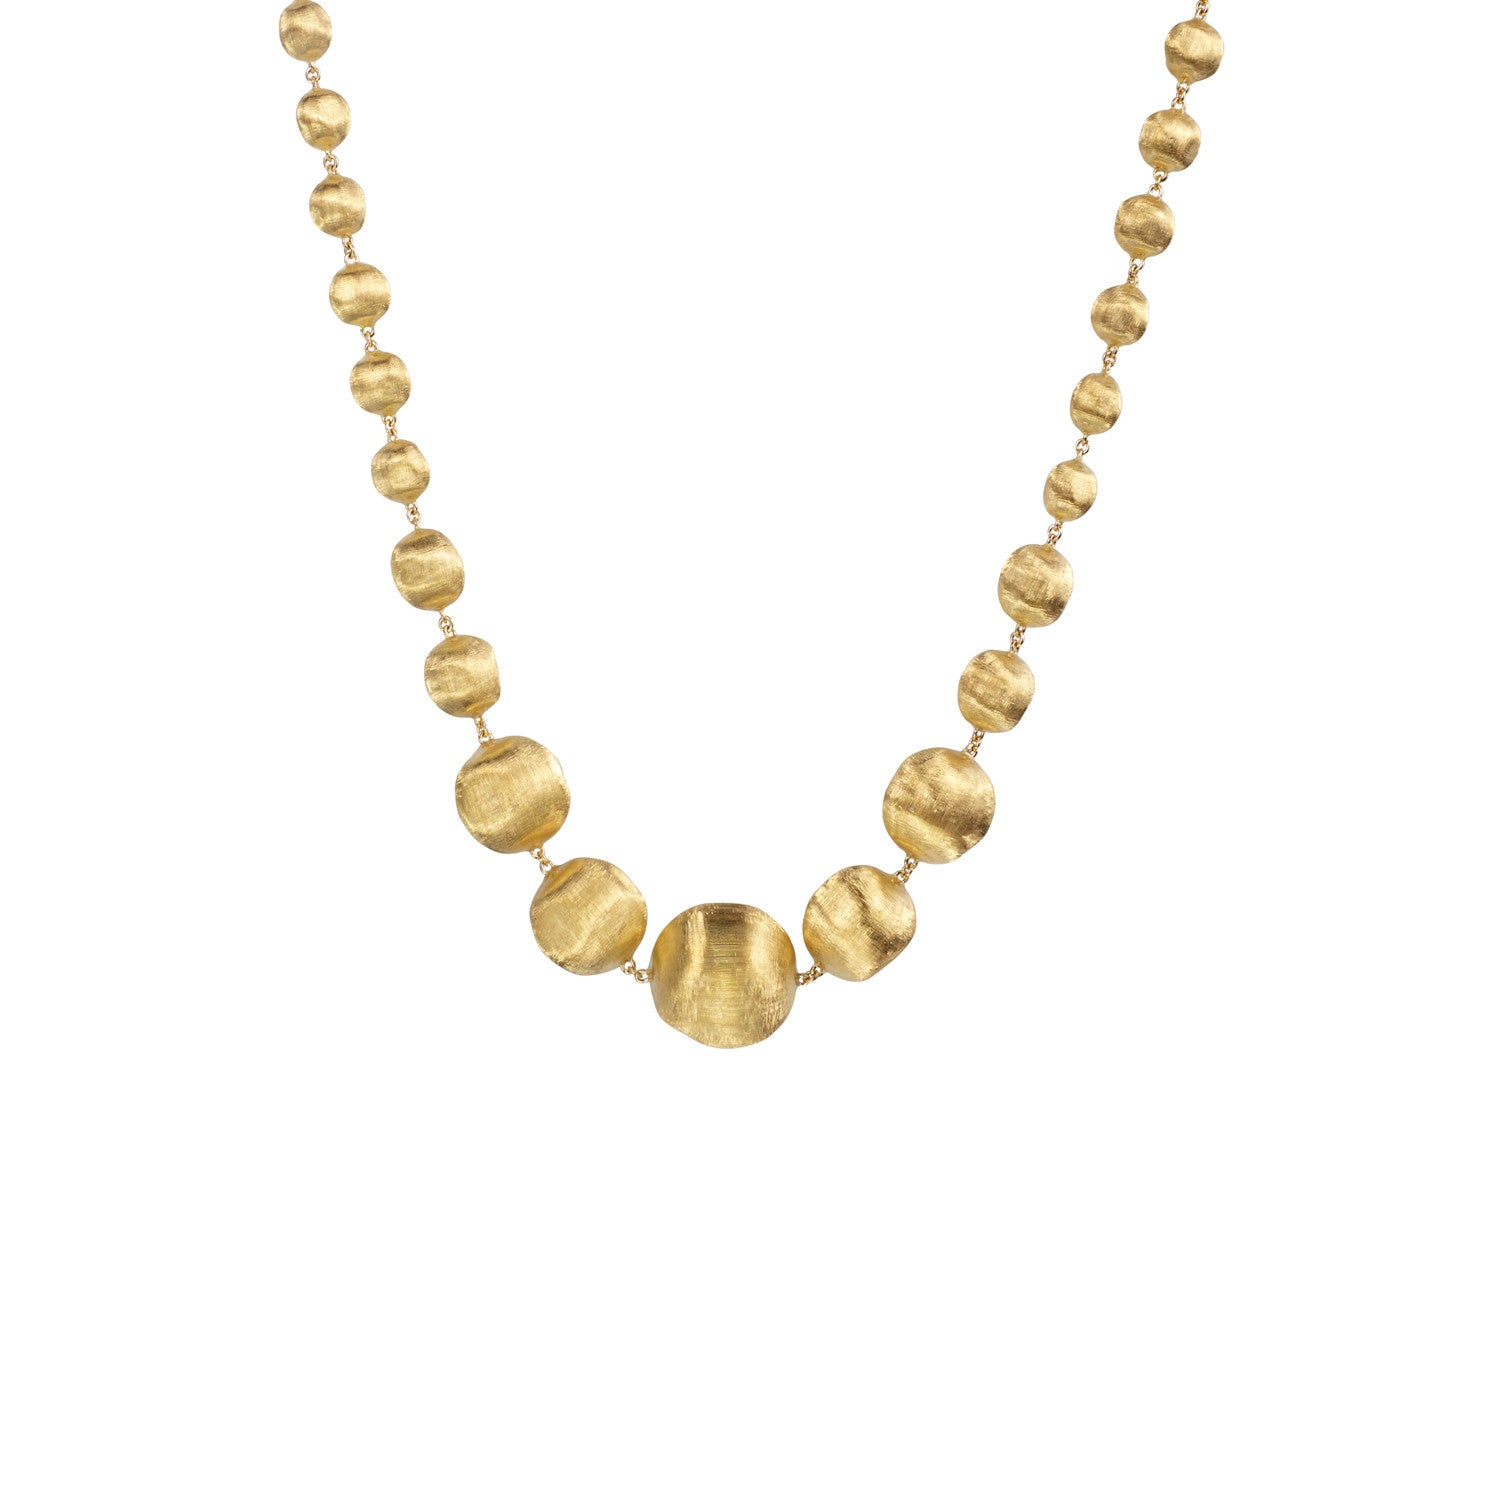 Africa Necklace in 18k Yellow Gold with Graduating  - 43cm - Orsini Jewellers NZ